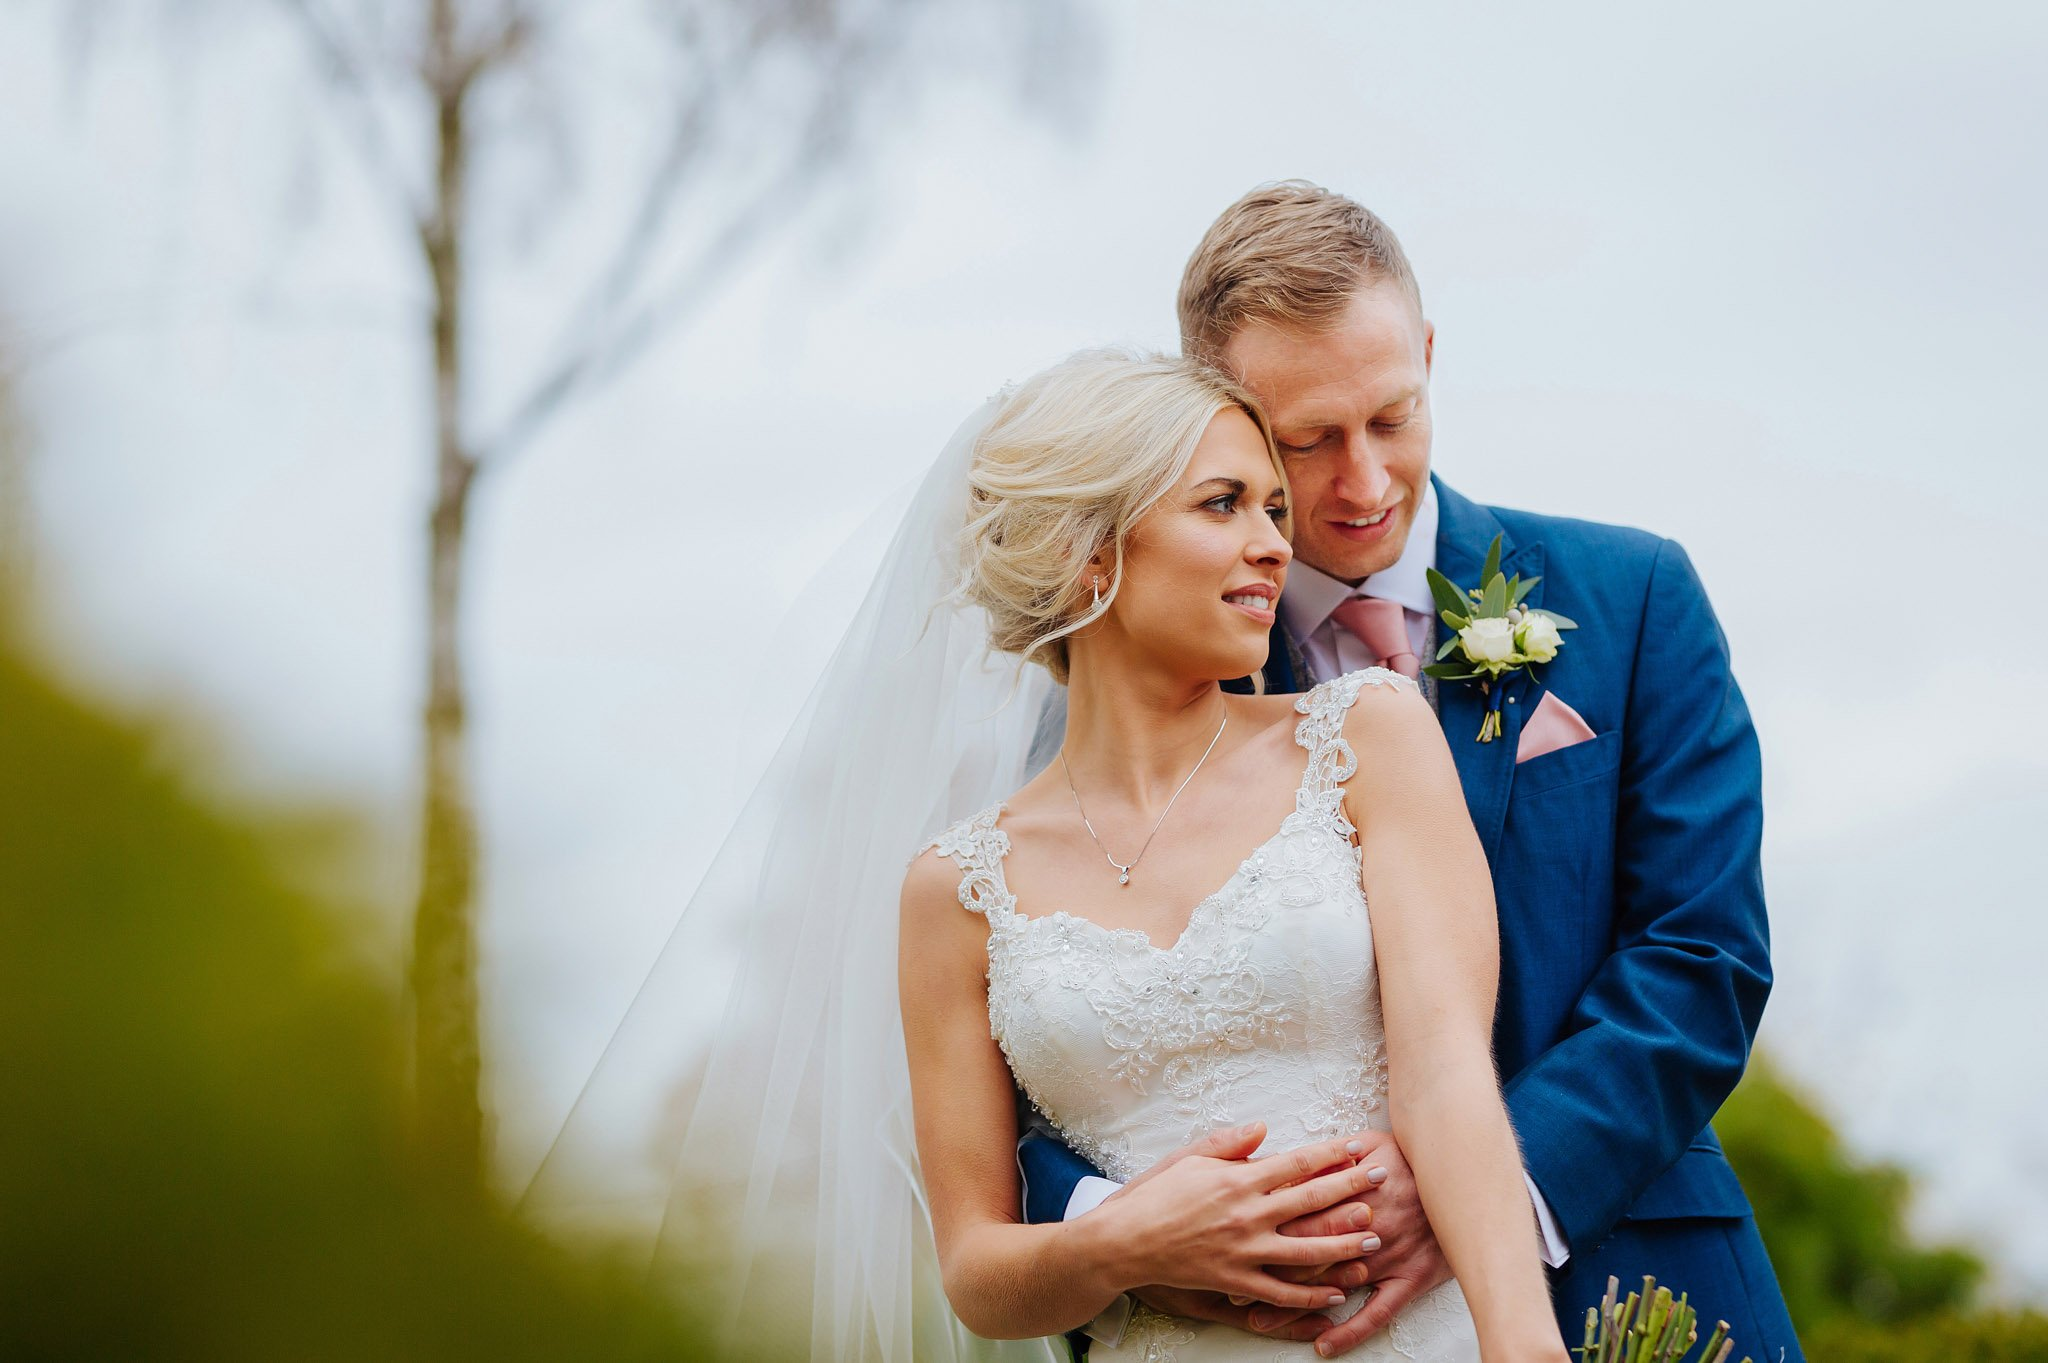 lemore manor wedding herefordshire 102 - Lemore Manor wedding, Herefordshire - West Midlands | Sadie + Ken